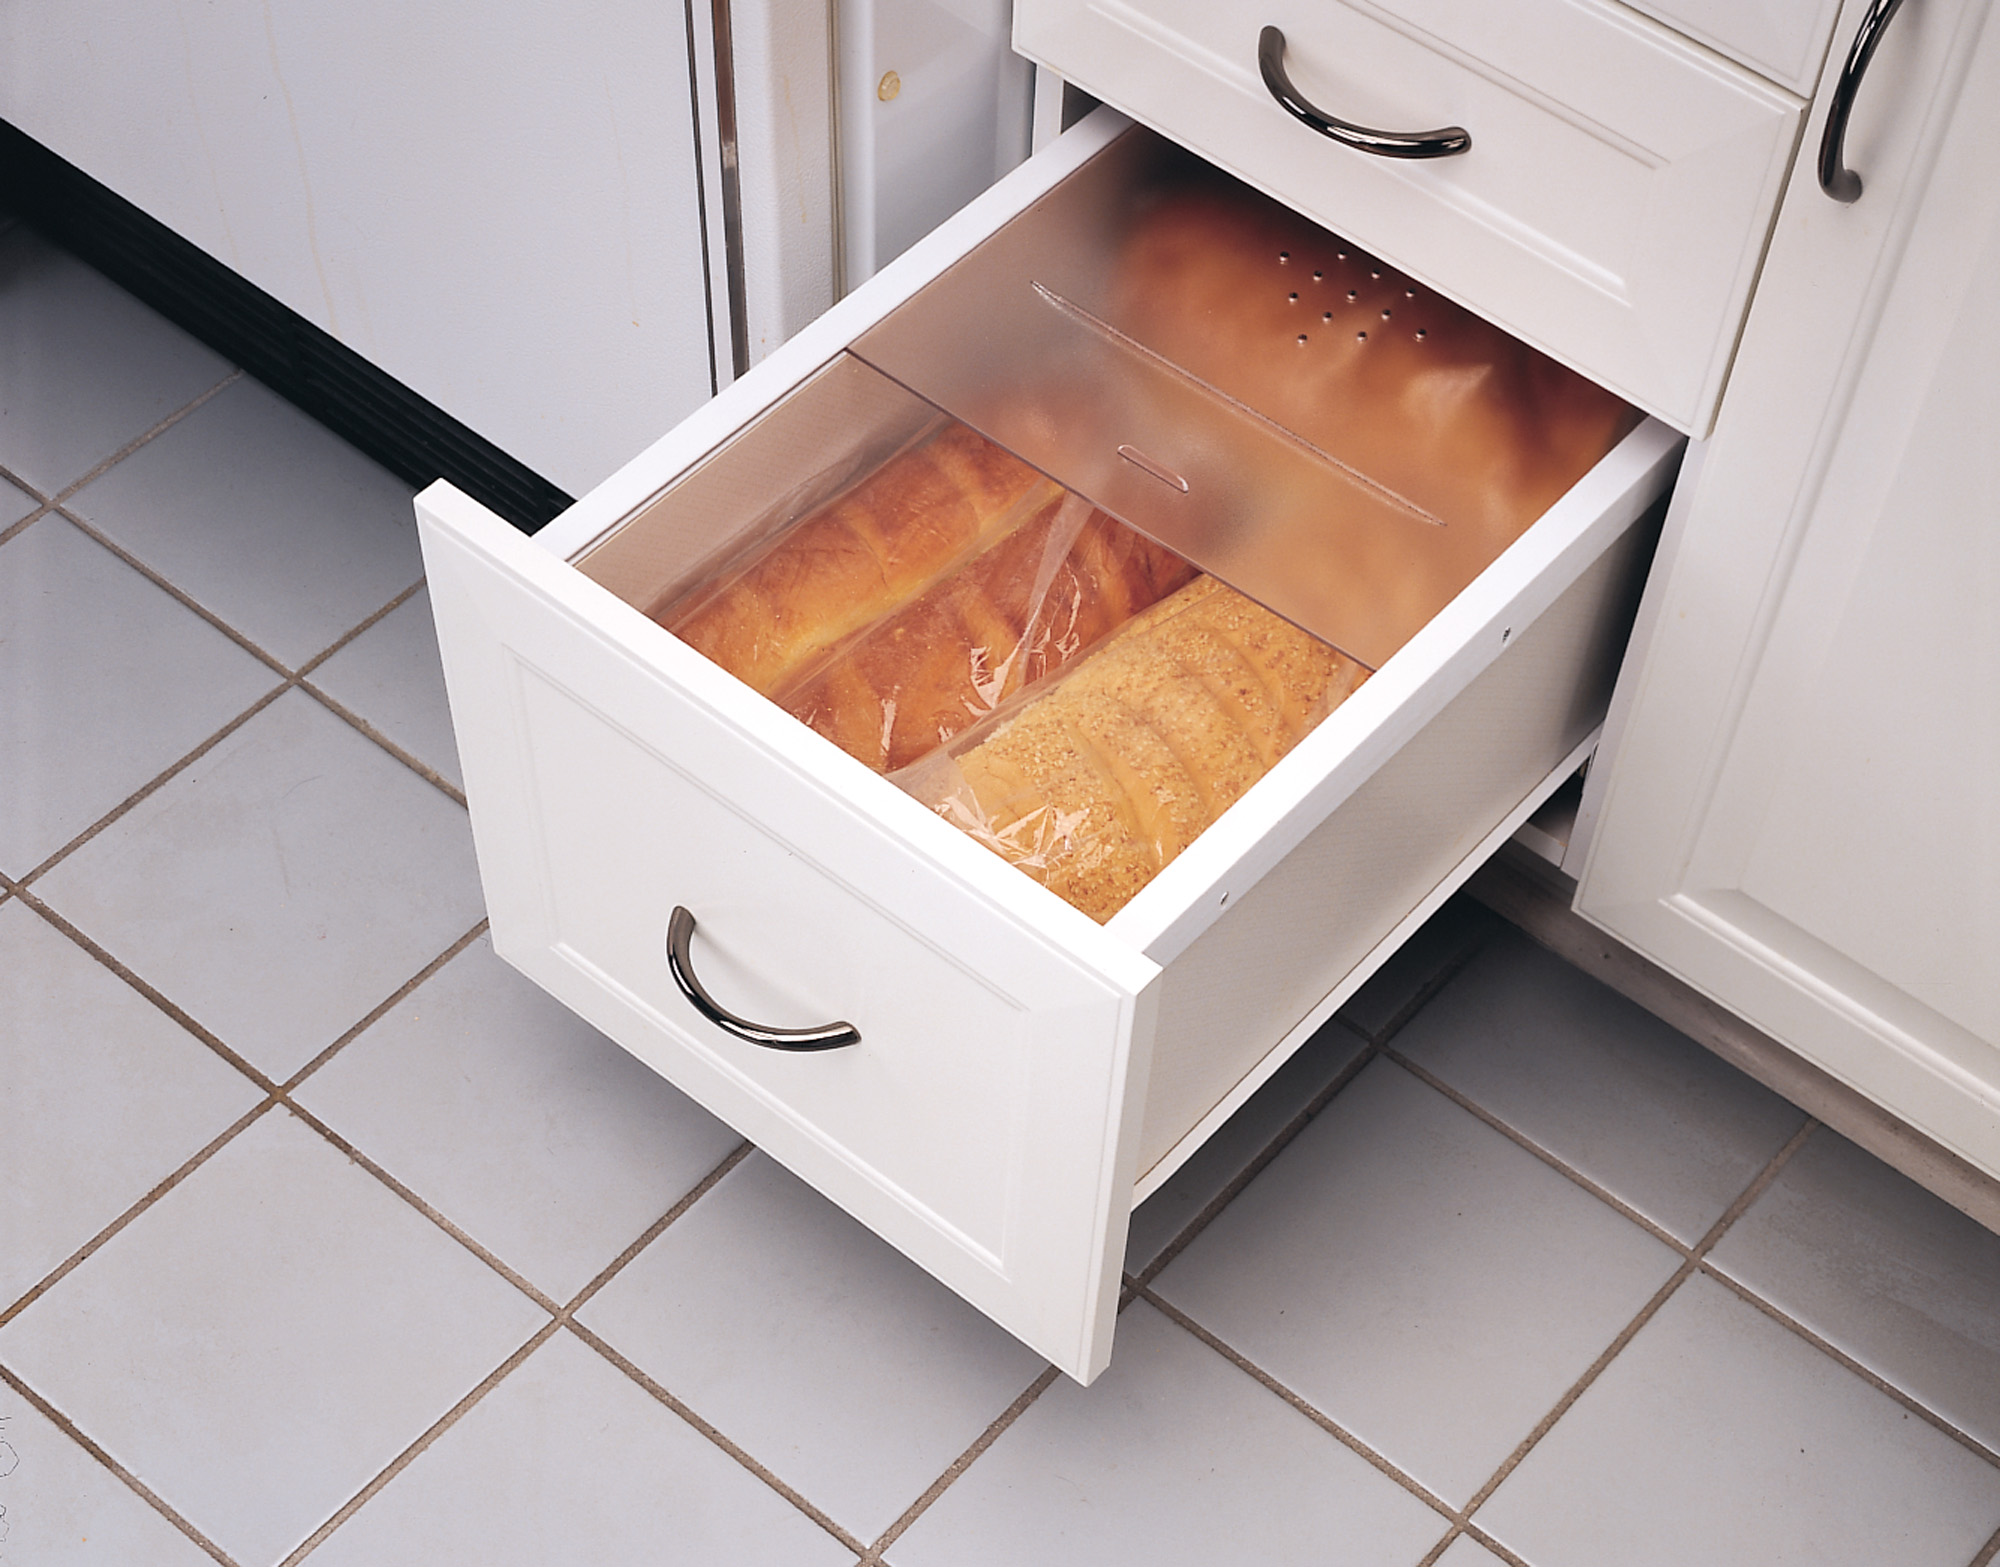 Large Translucent Bread Drawer Cover Kit